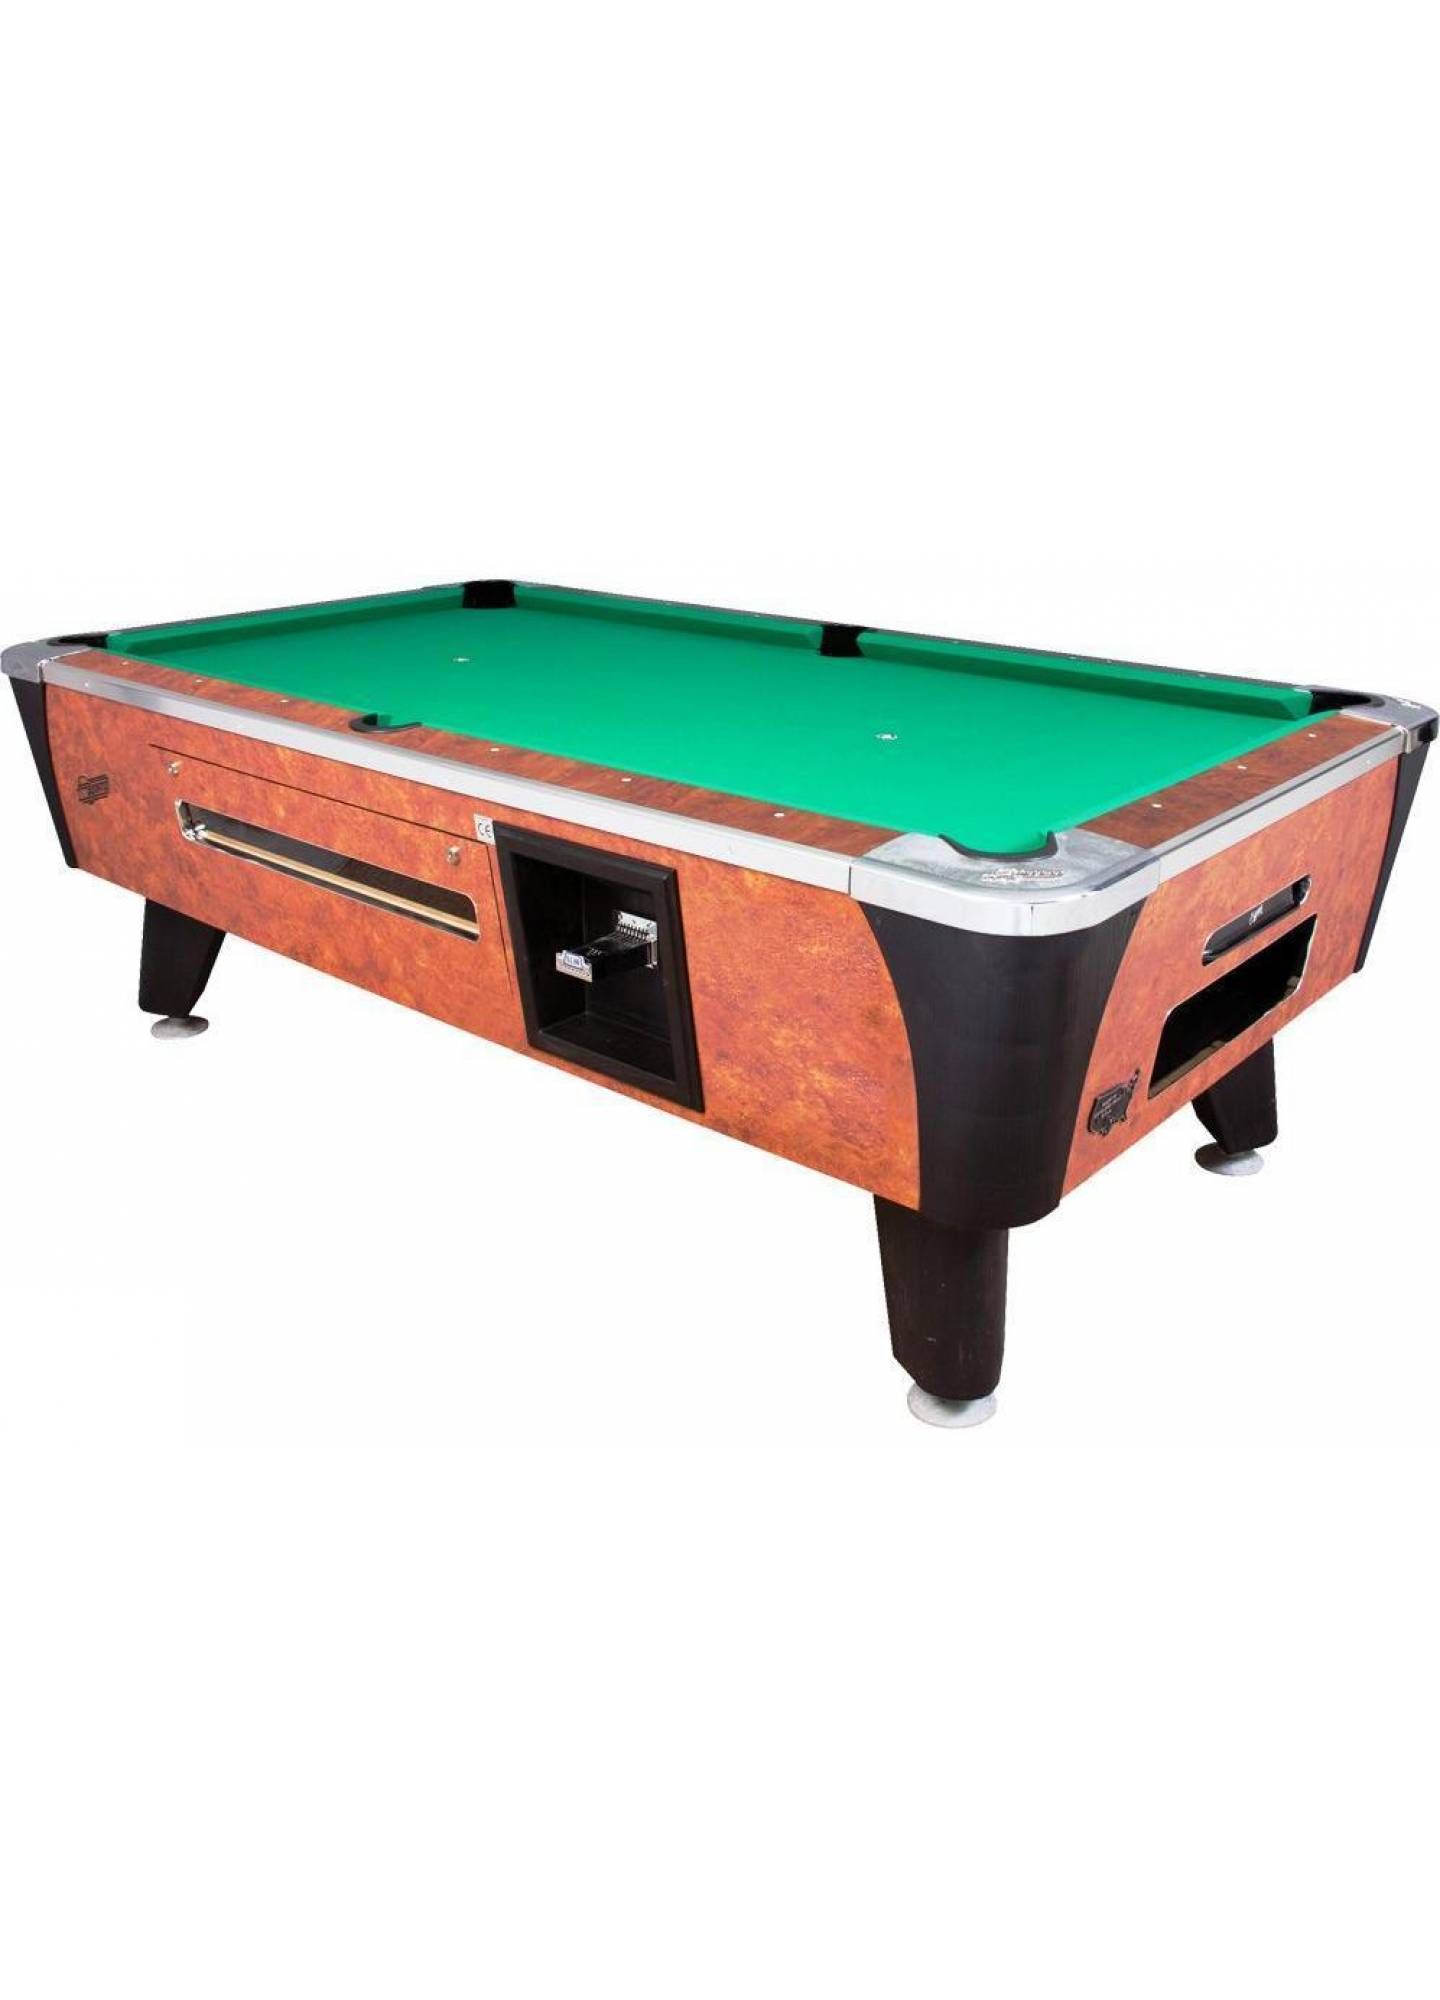 VALLEY DYNAMO SEDONA COIN OPERATED POOL TABLE